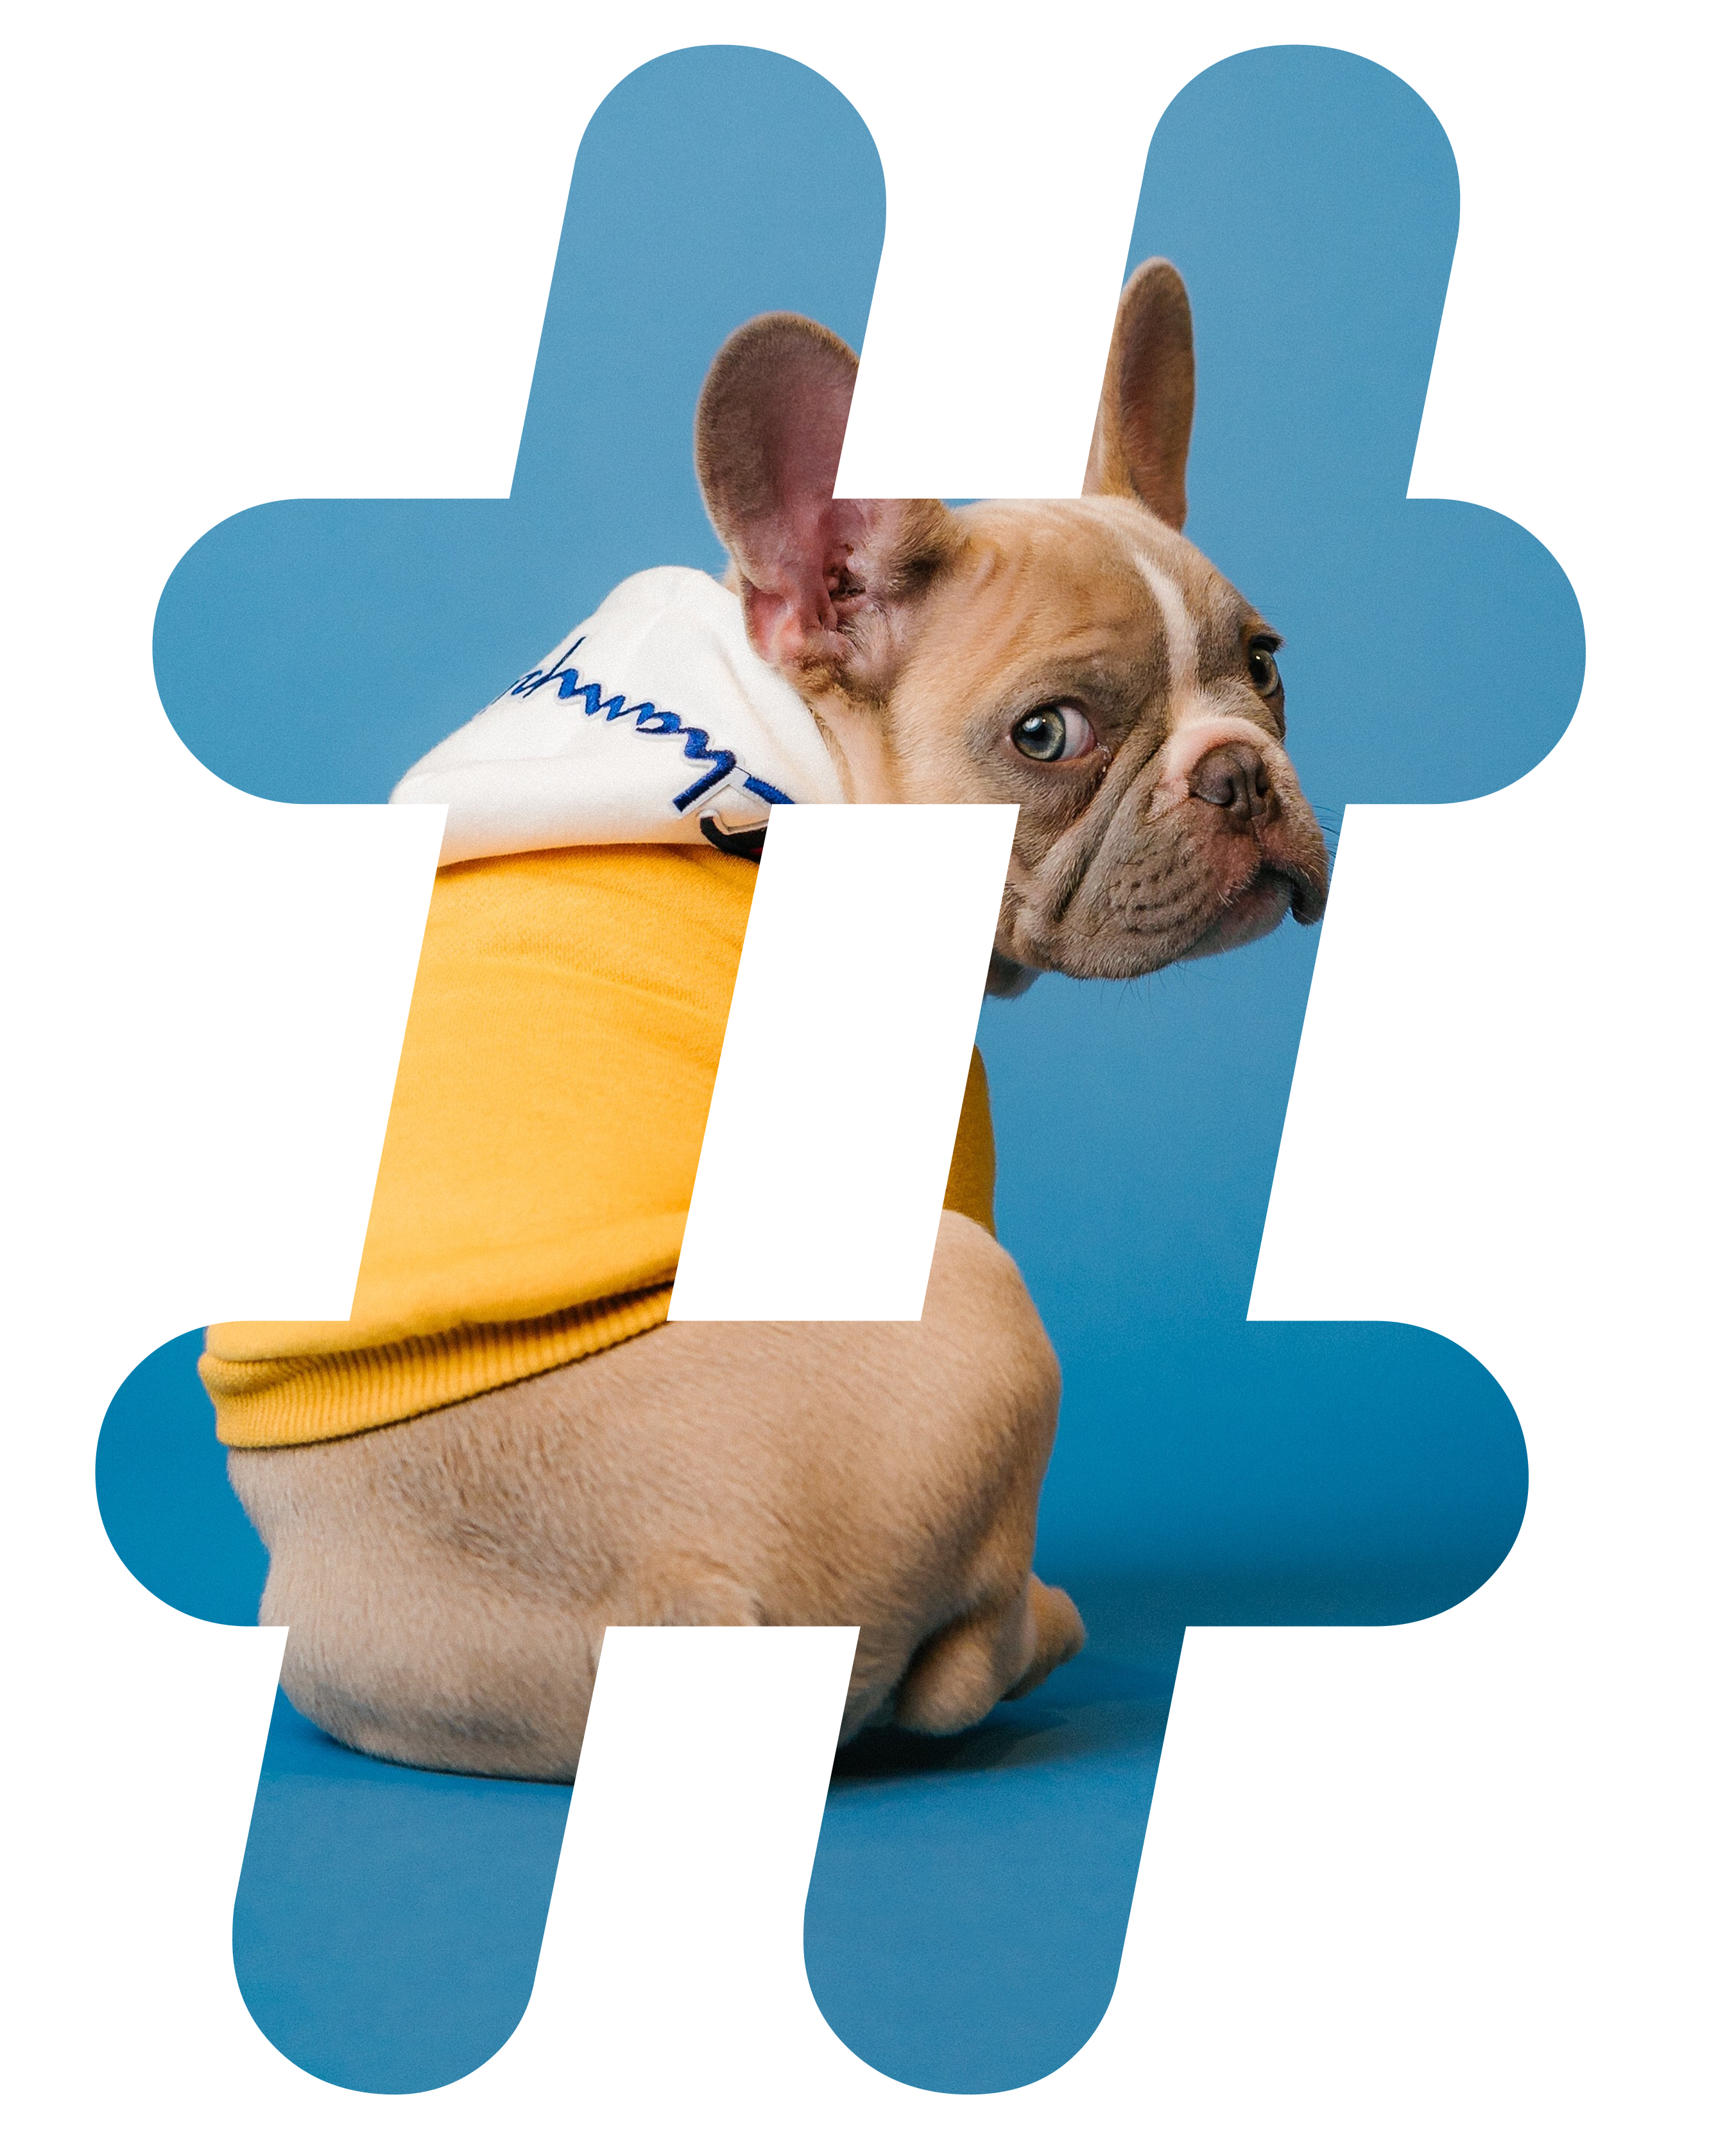 Pets related hashtags